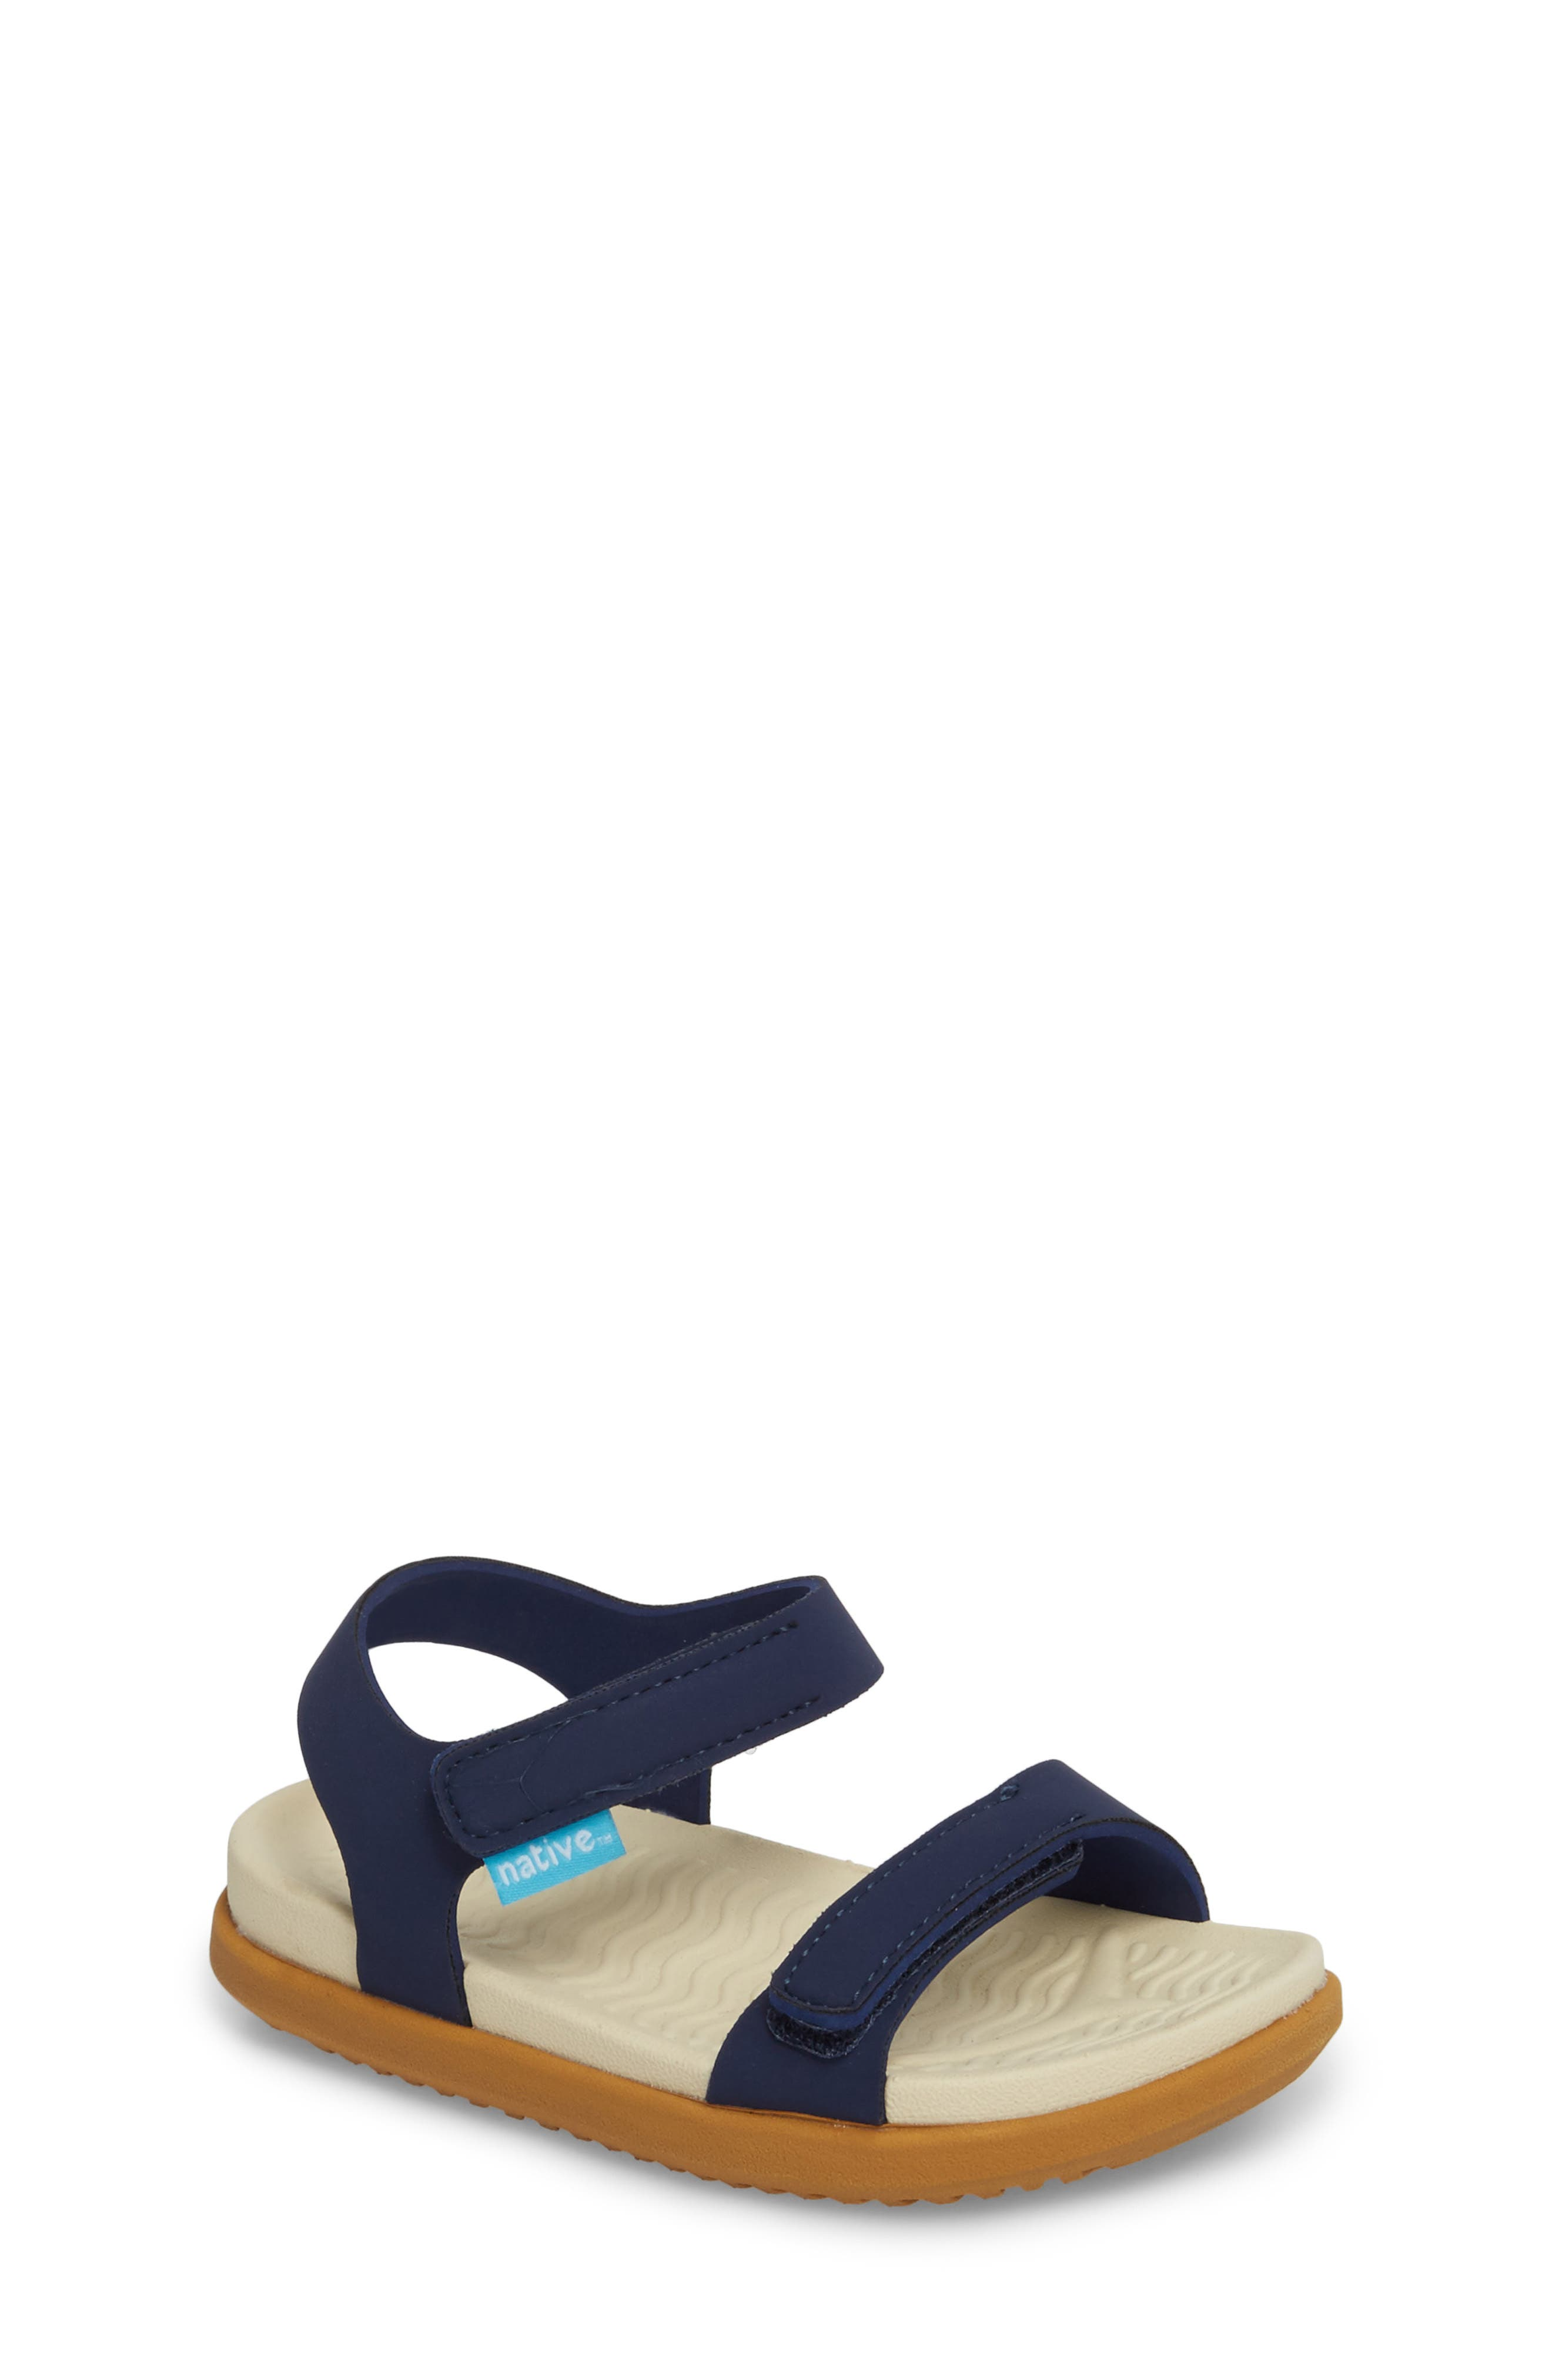 Charley Child Waterproof Flat Sandal,                         Main,                         color, BLUE/ BONE WHITE/ TOFFEE